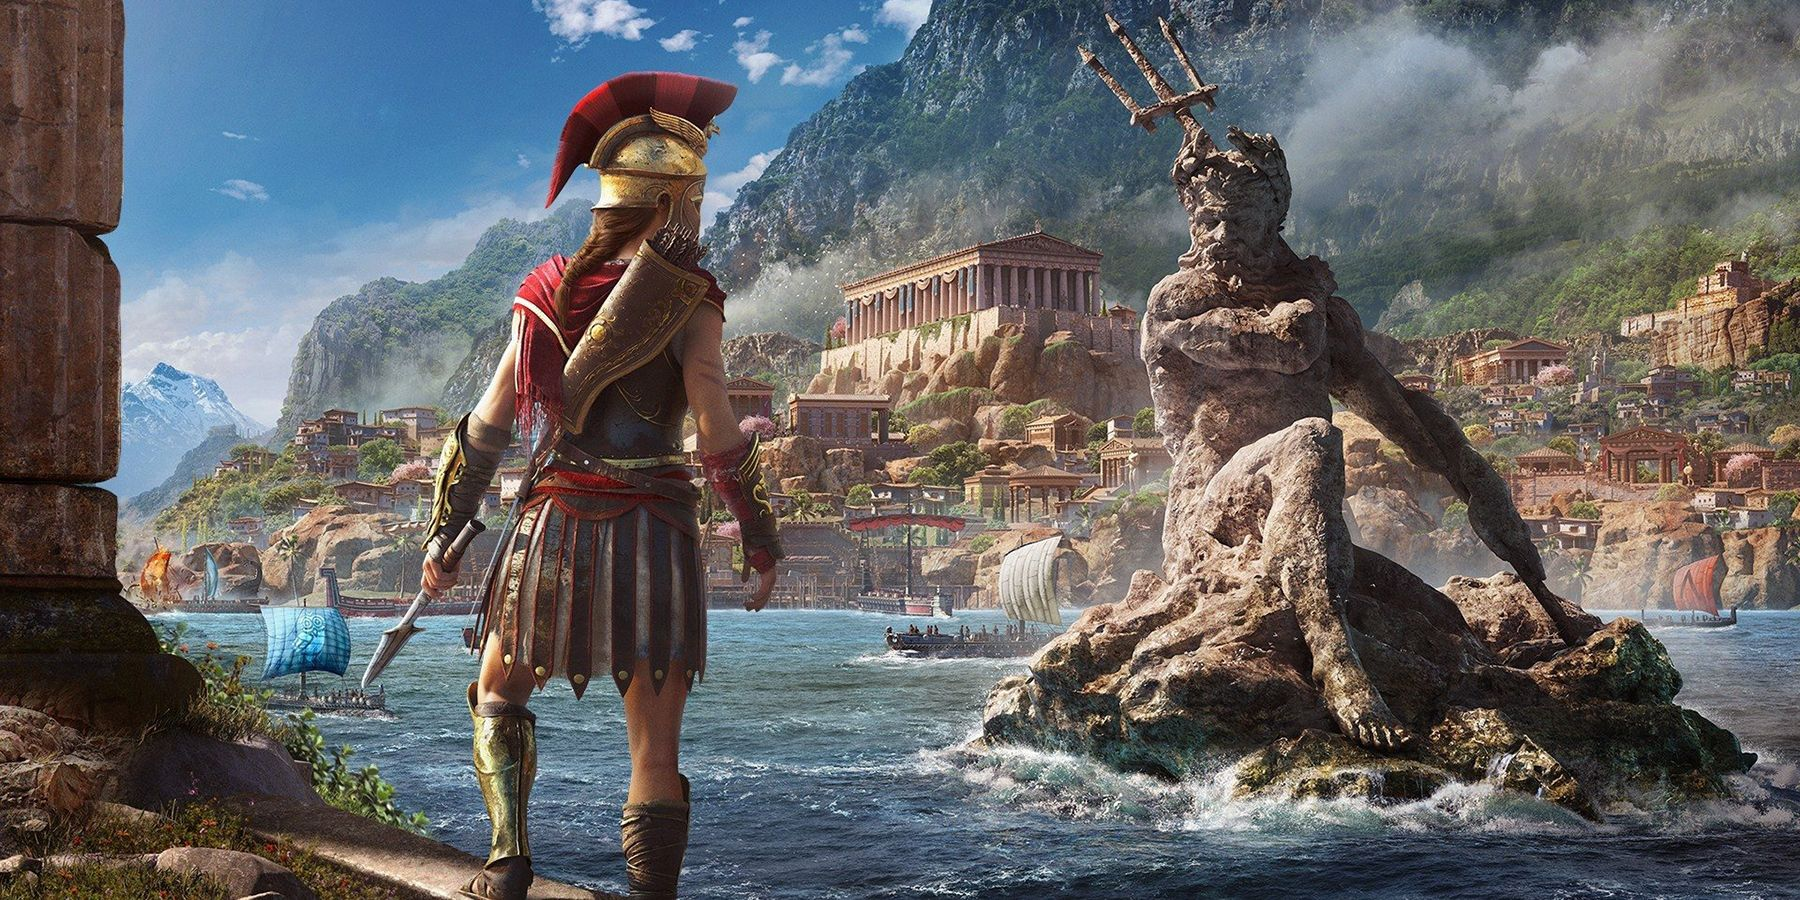 Assassin's Creed Odyssey Beginners Gameplay Tips | Screen Rant